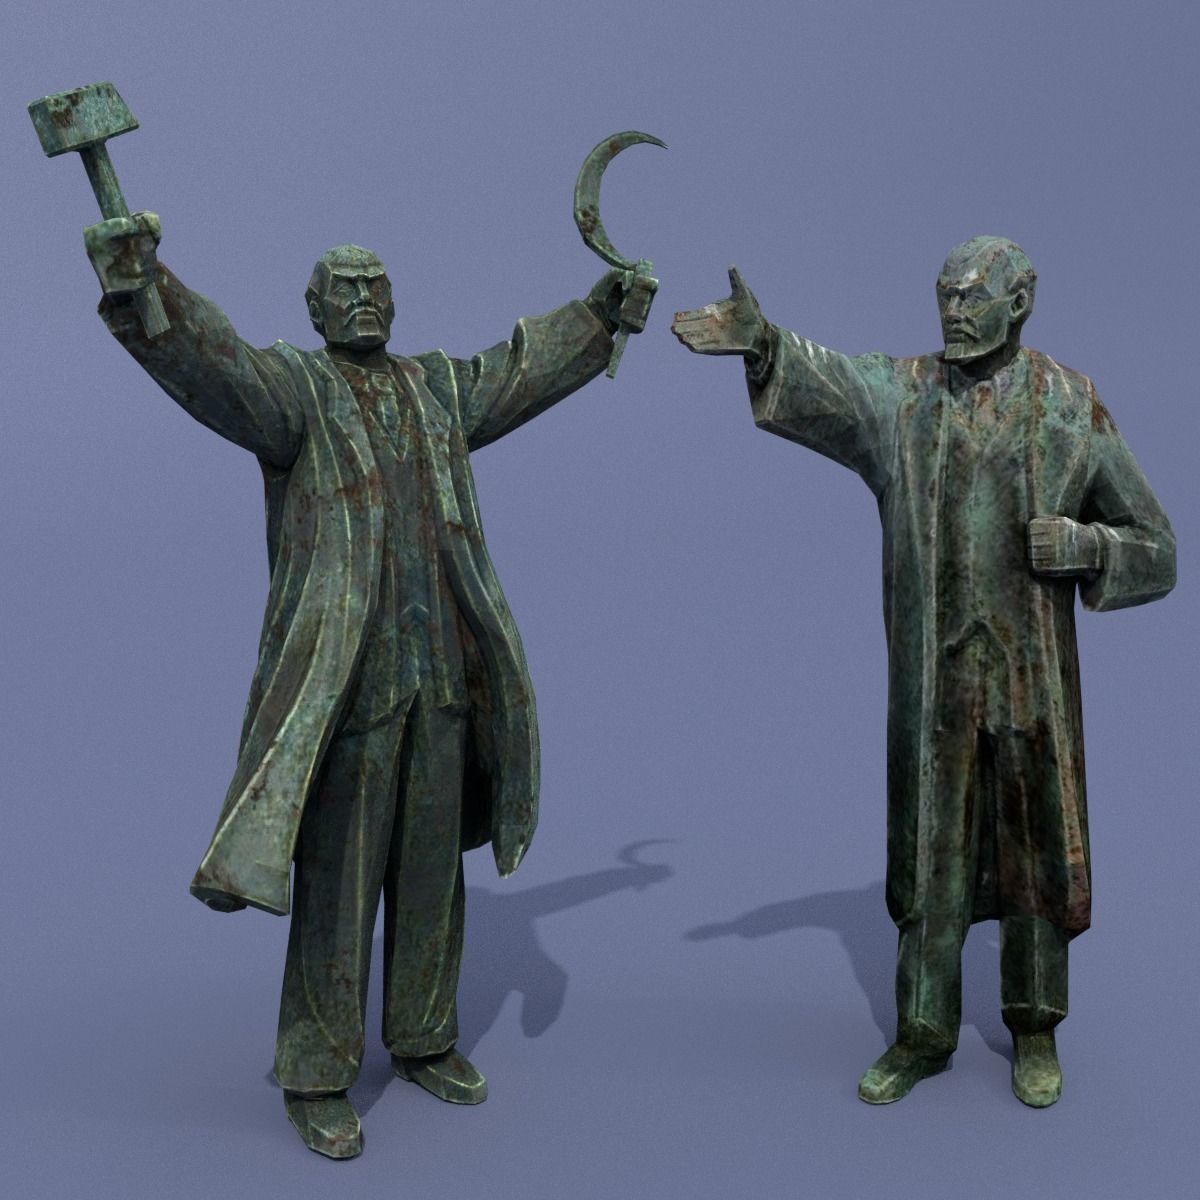 Two monuments of Lenin